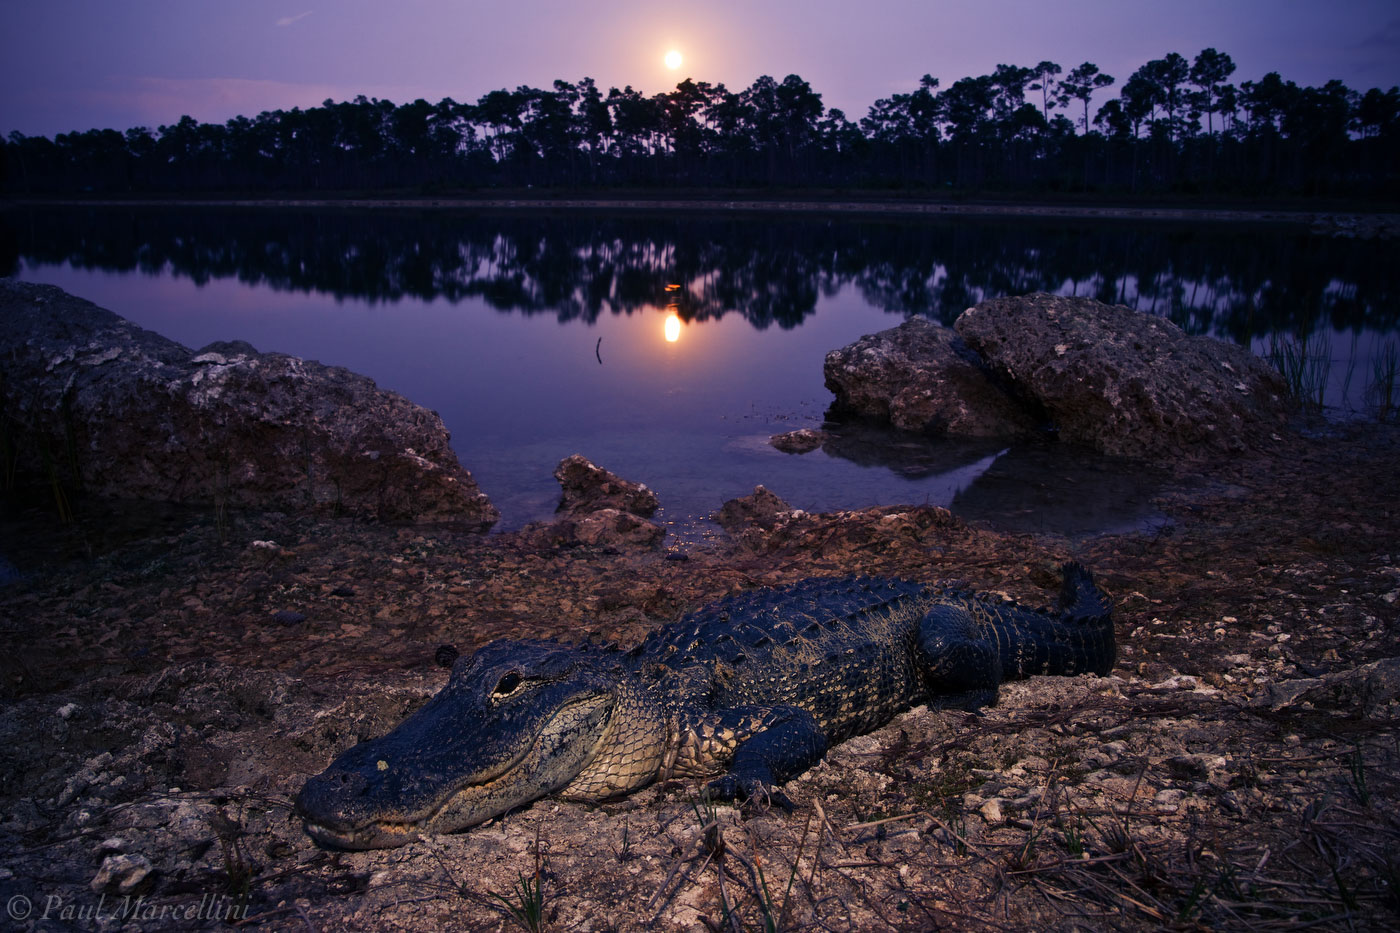 American Alligator, Alligator mississippiensis, moon, everglades, photo